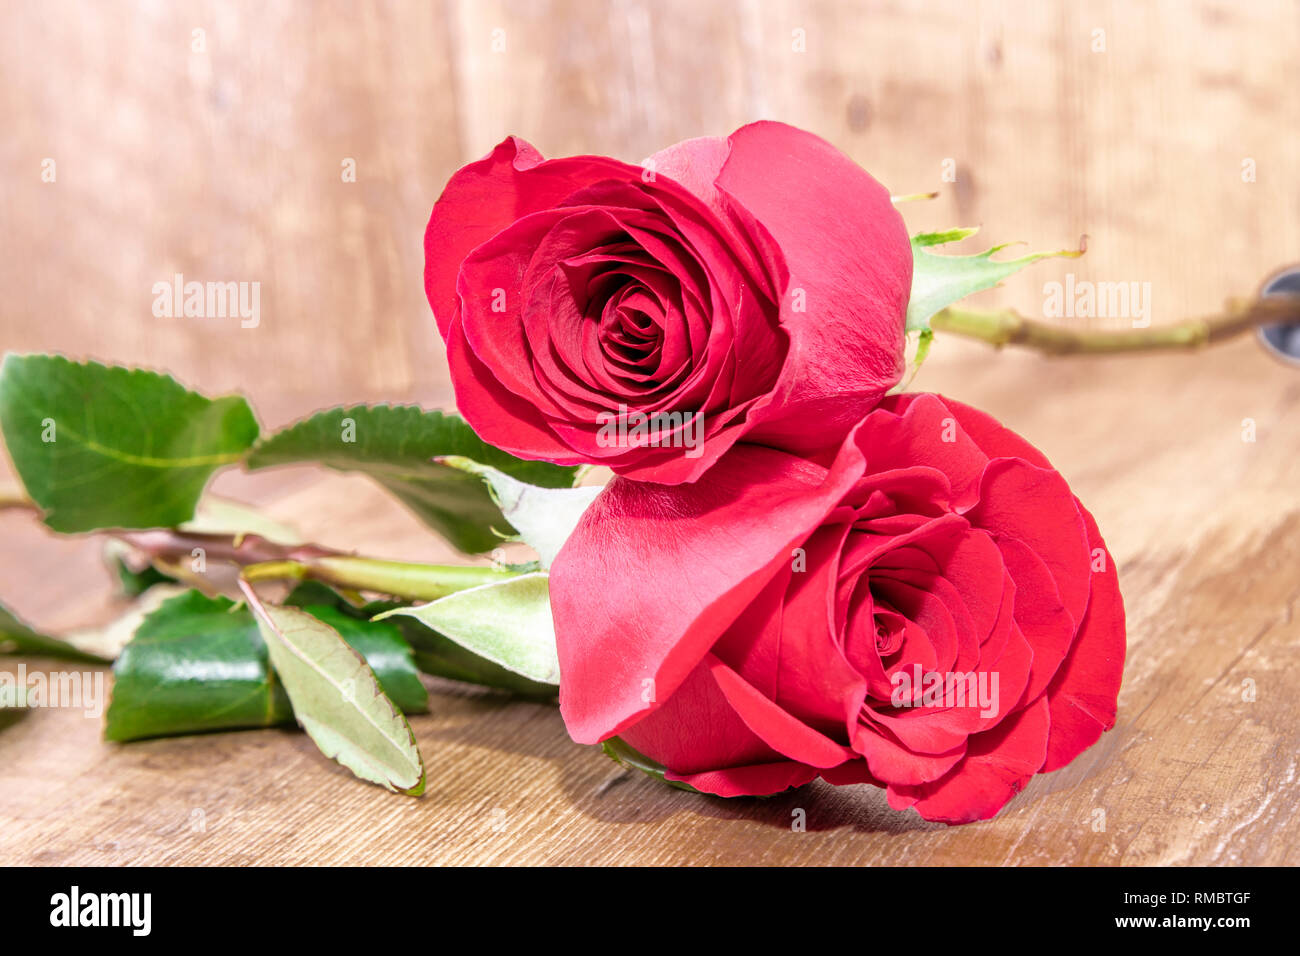 red roses put on wooden background as card or greeting or invitation of love , romantic concept in valentines day or for mother´s day - Stock Image